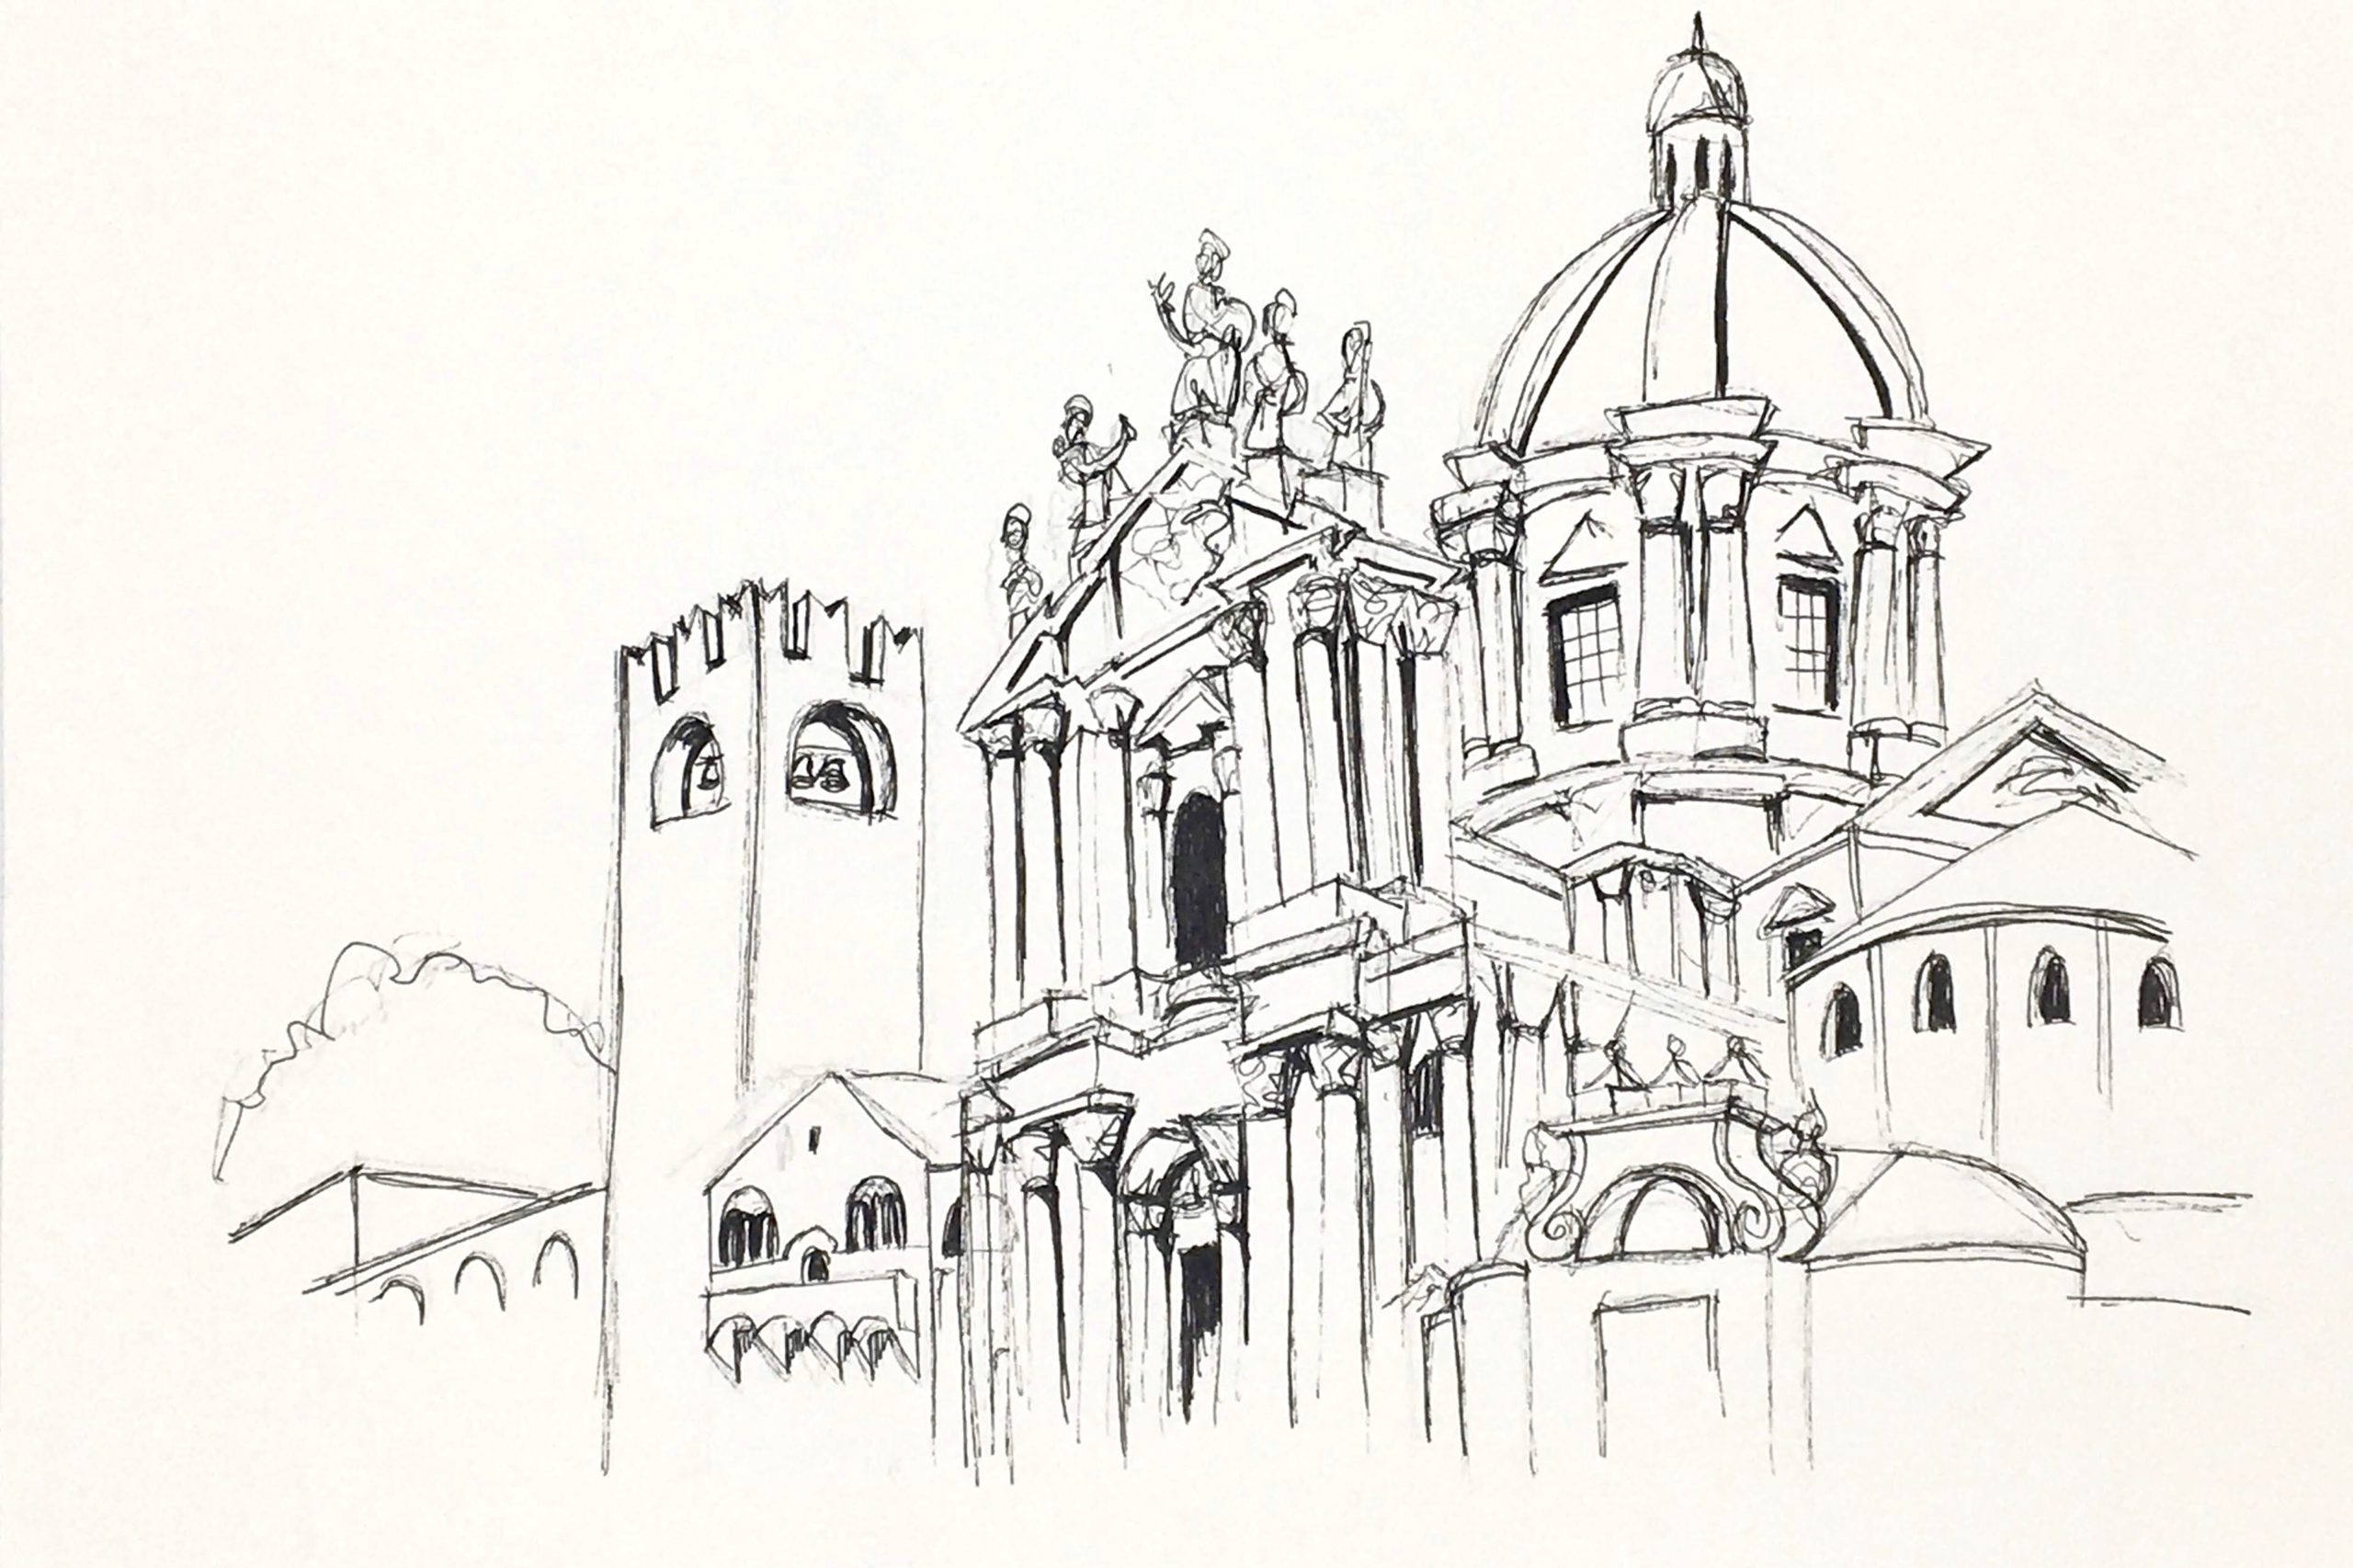 Painting Of The two cathedrals of Piazza Paolo VI in Brescia